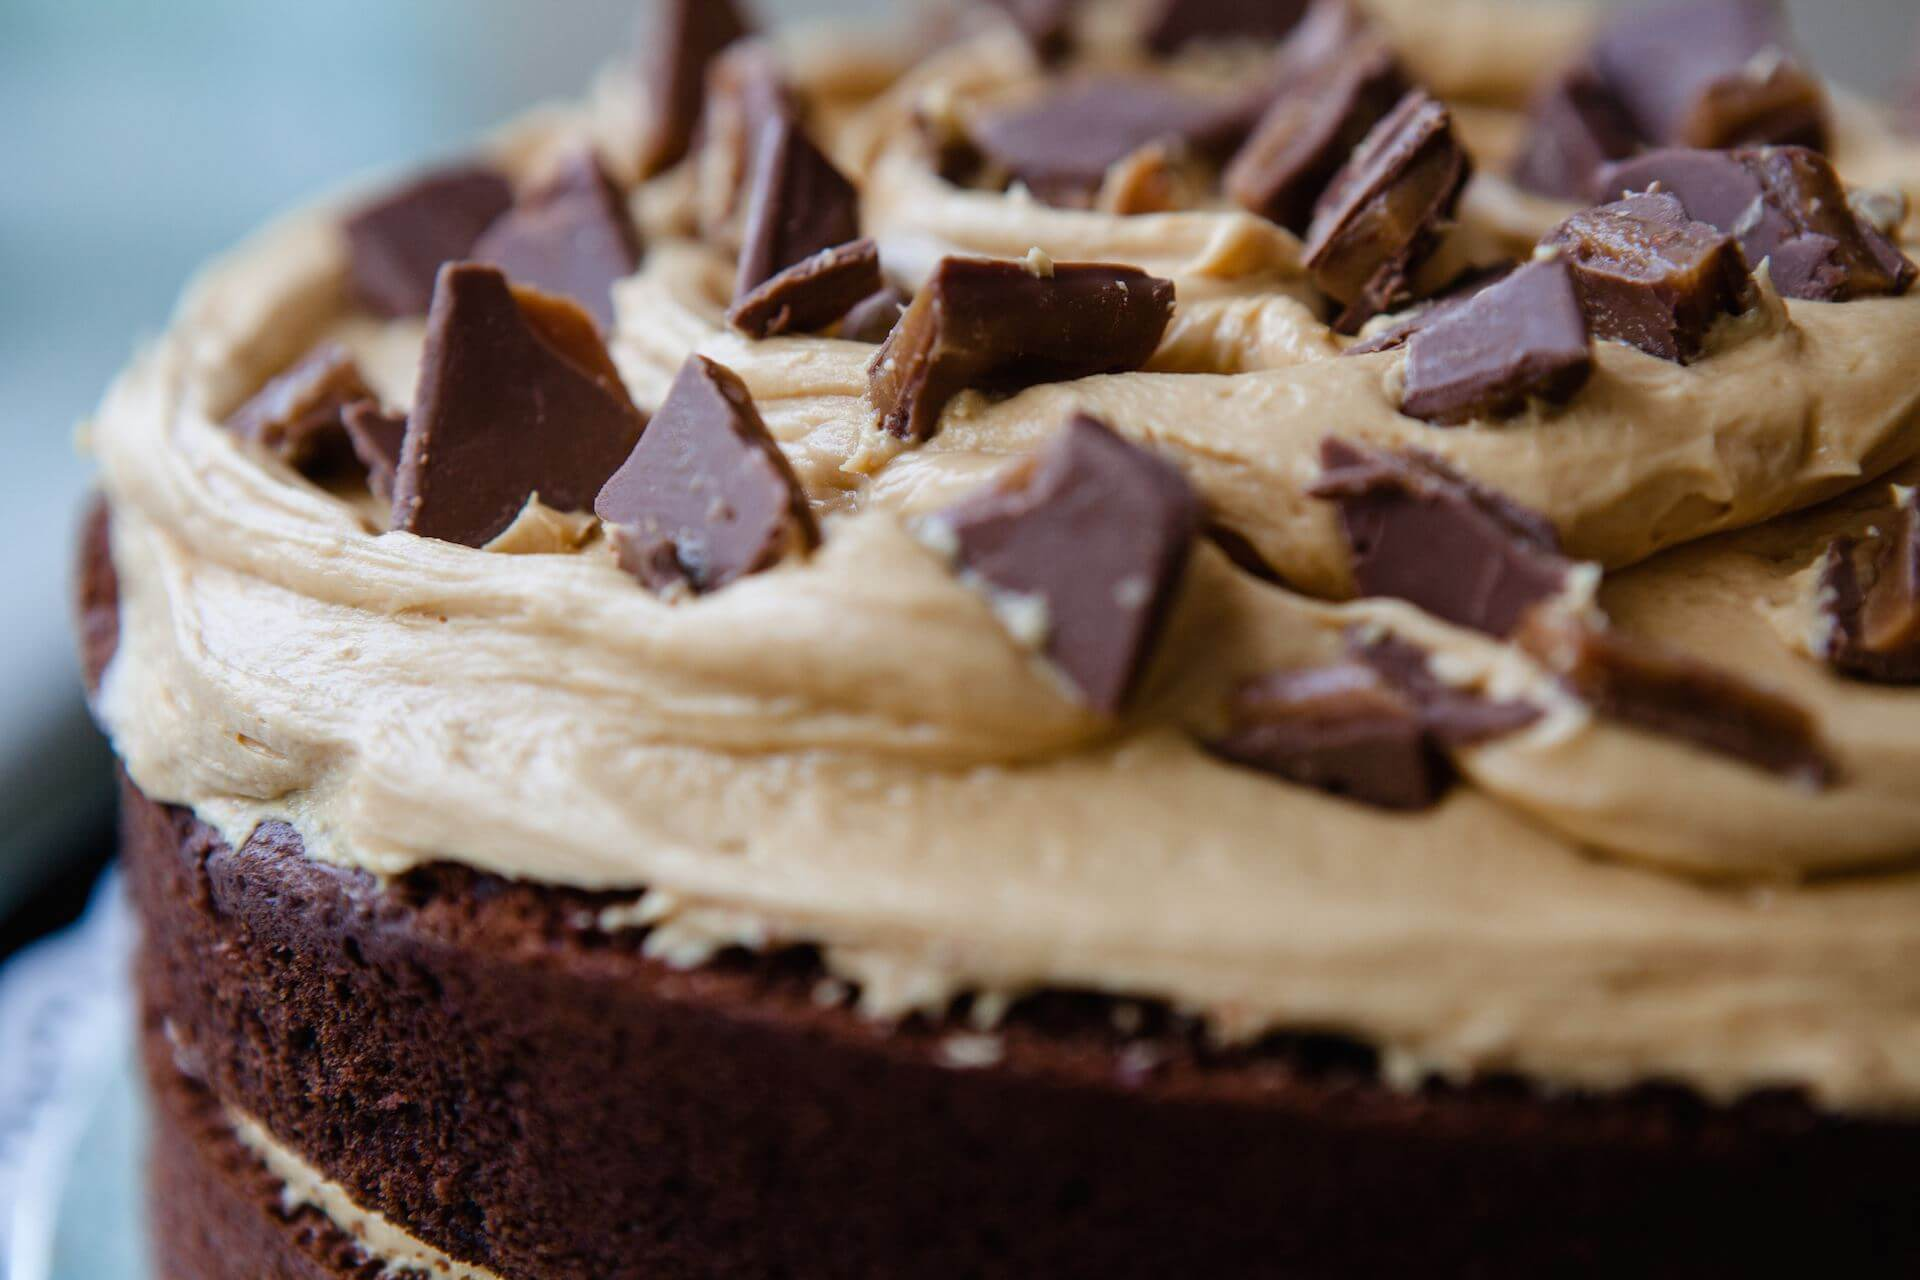 Caramel Crunch Chocolate Cake